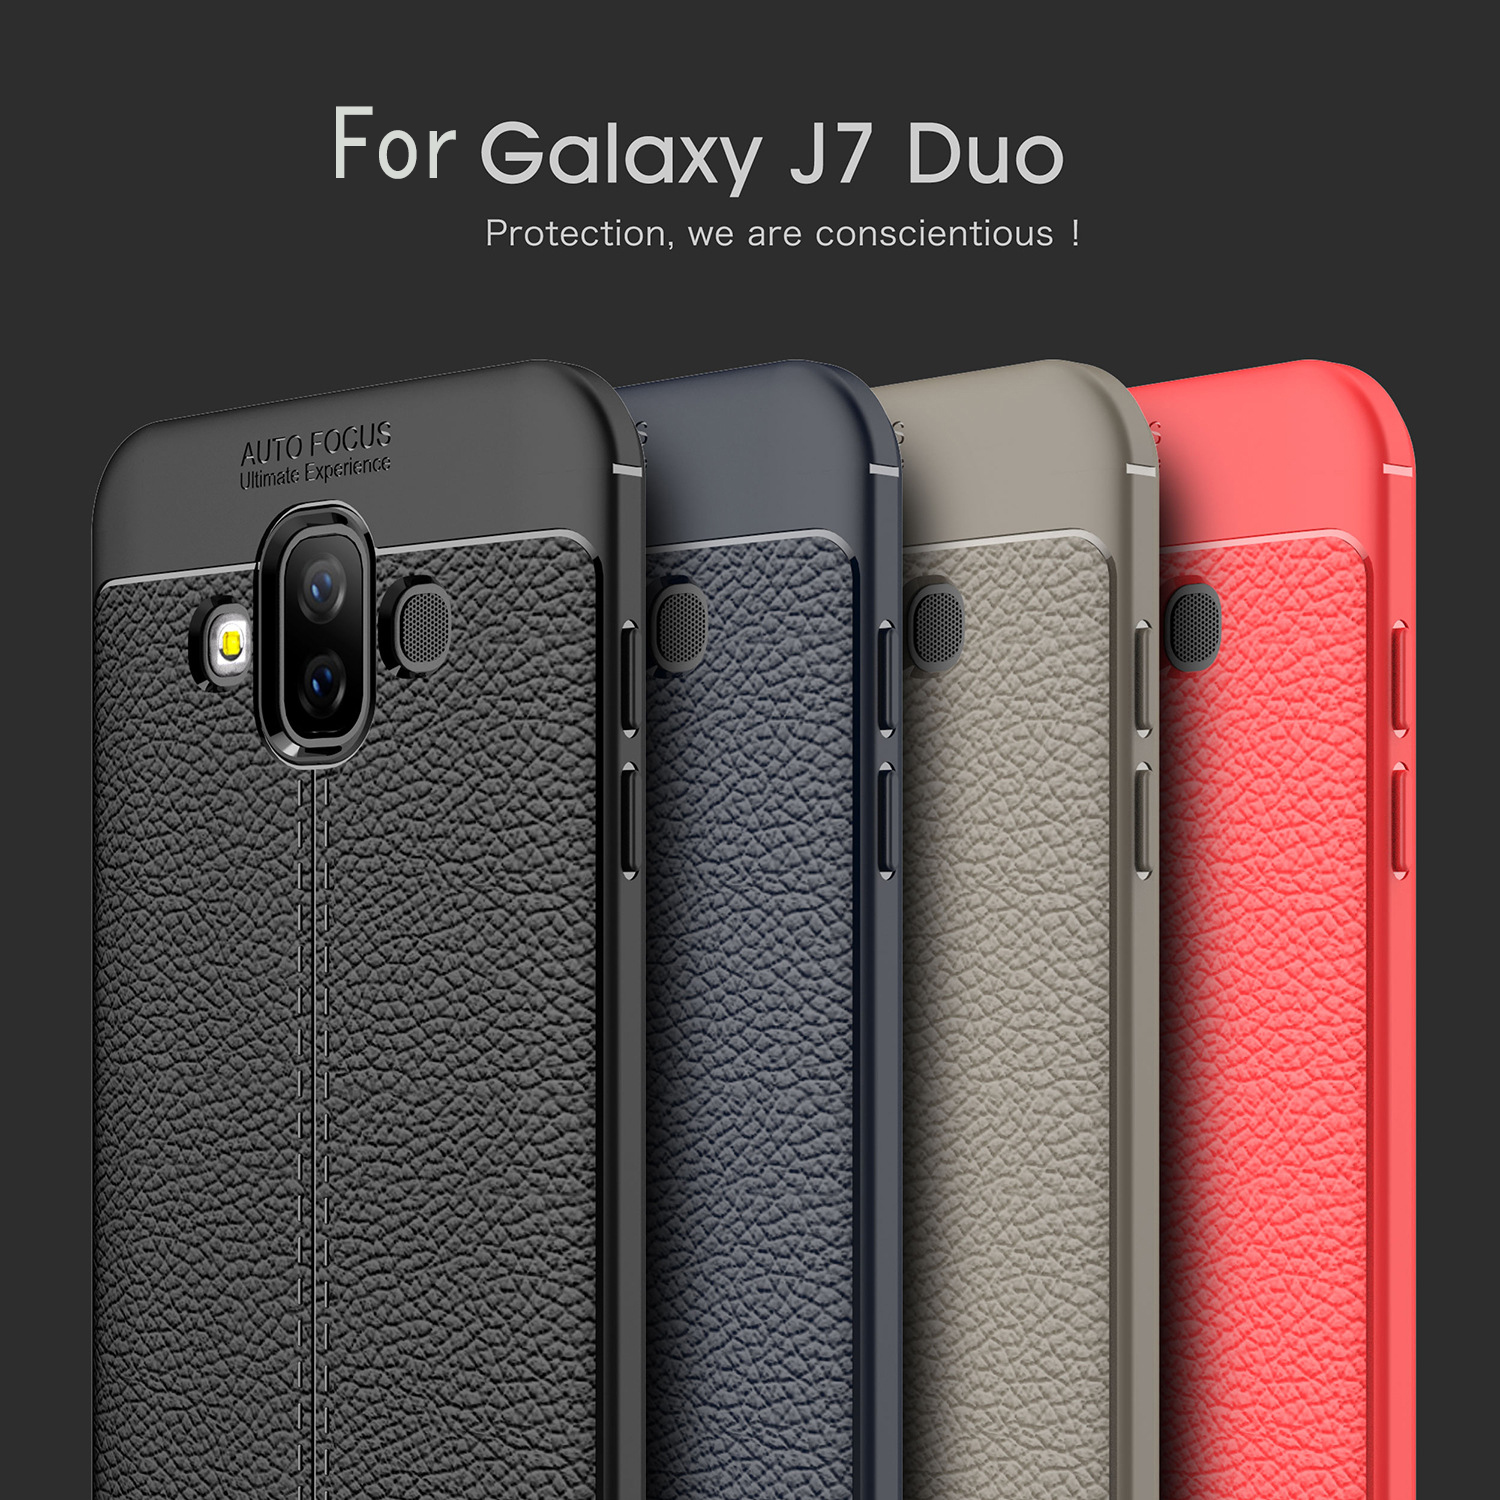 For Samsung Galaxy J7 Duo Case Luxury Leather texture Soft Silicone Protective back cover case